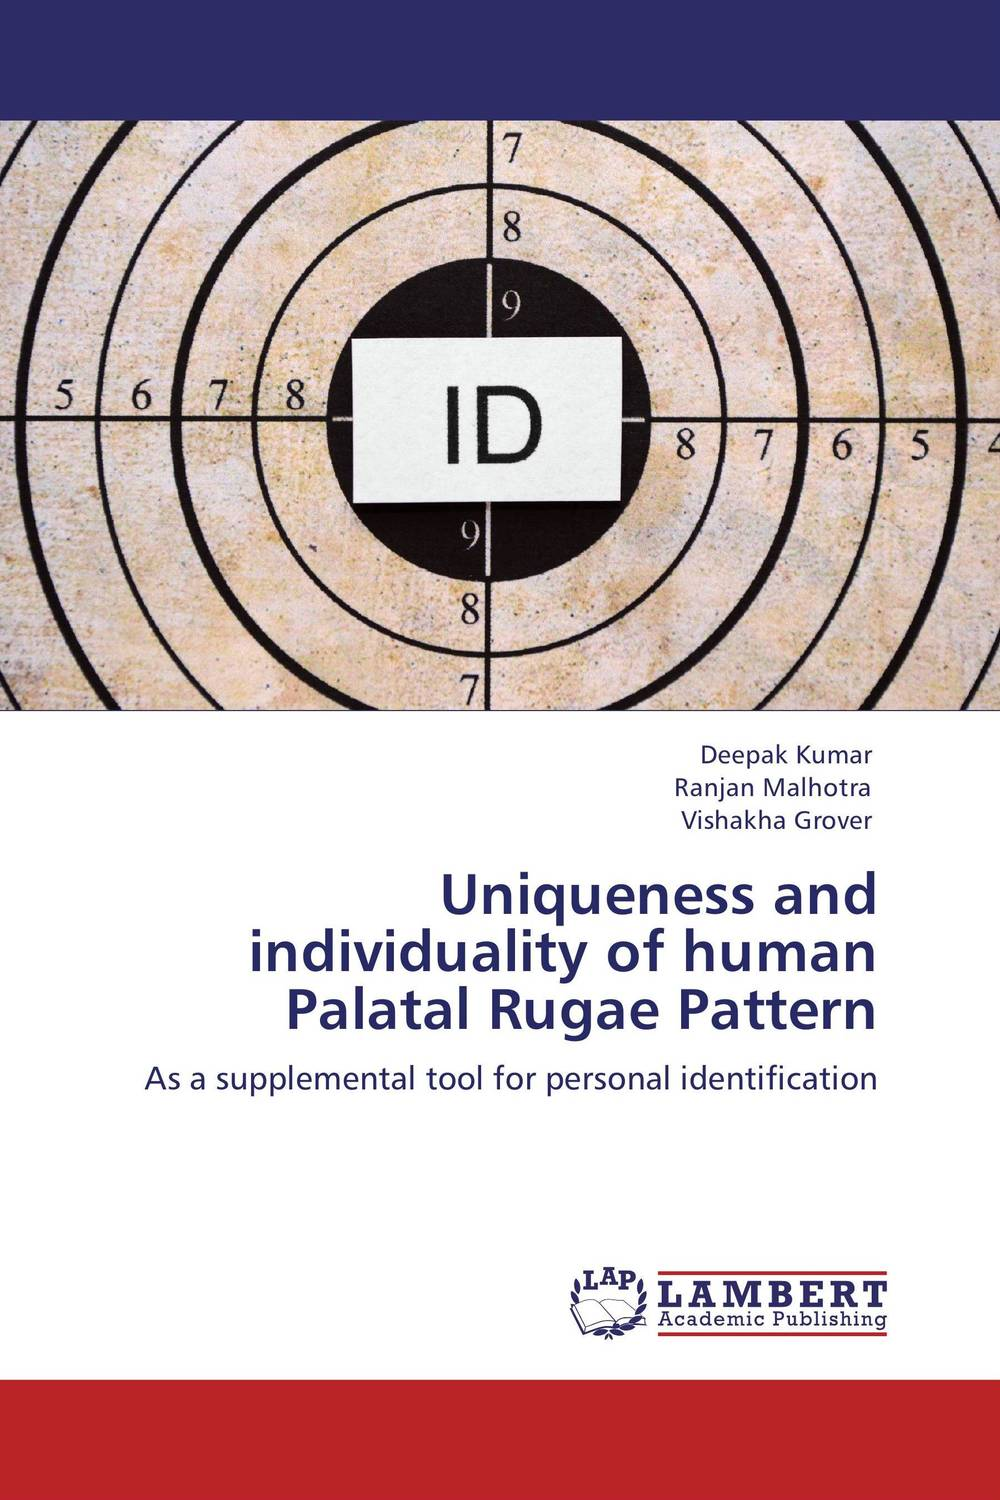 Uniqueness and individuality of human Palatal Rugae Pattern uniqueness майка